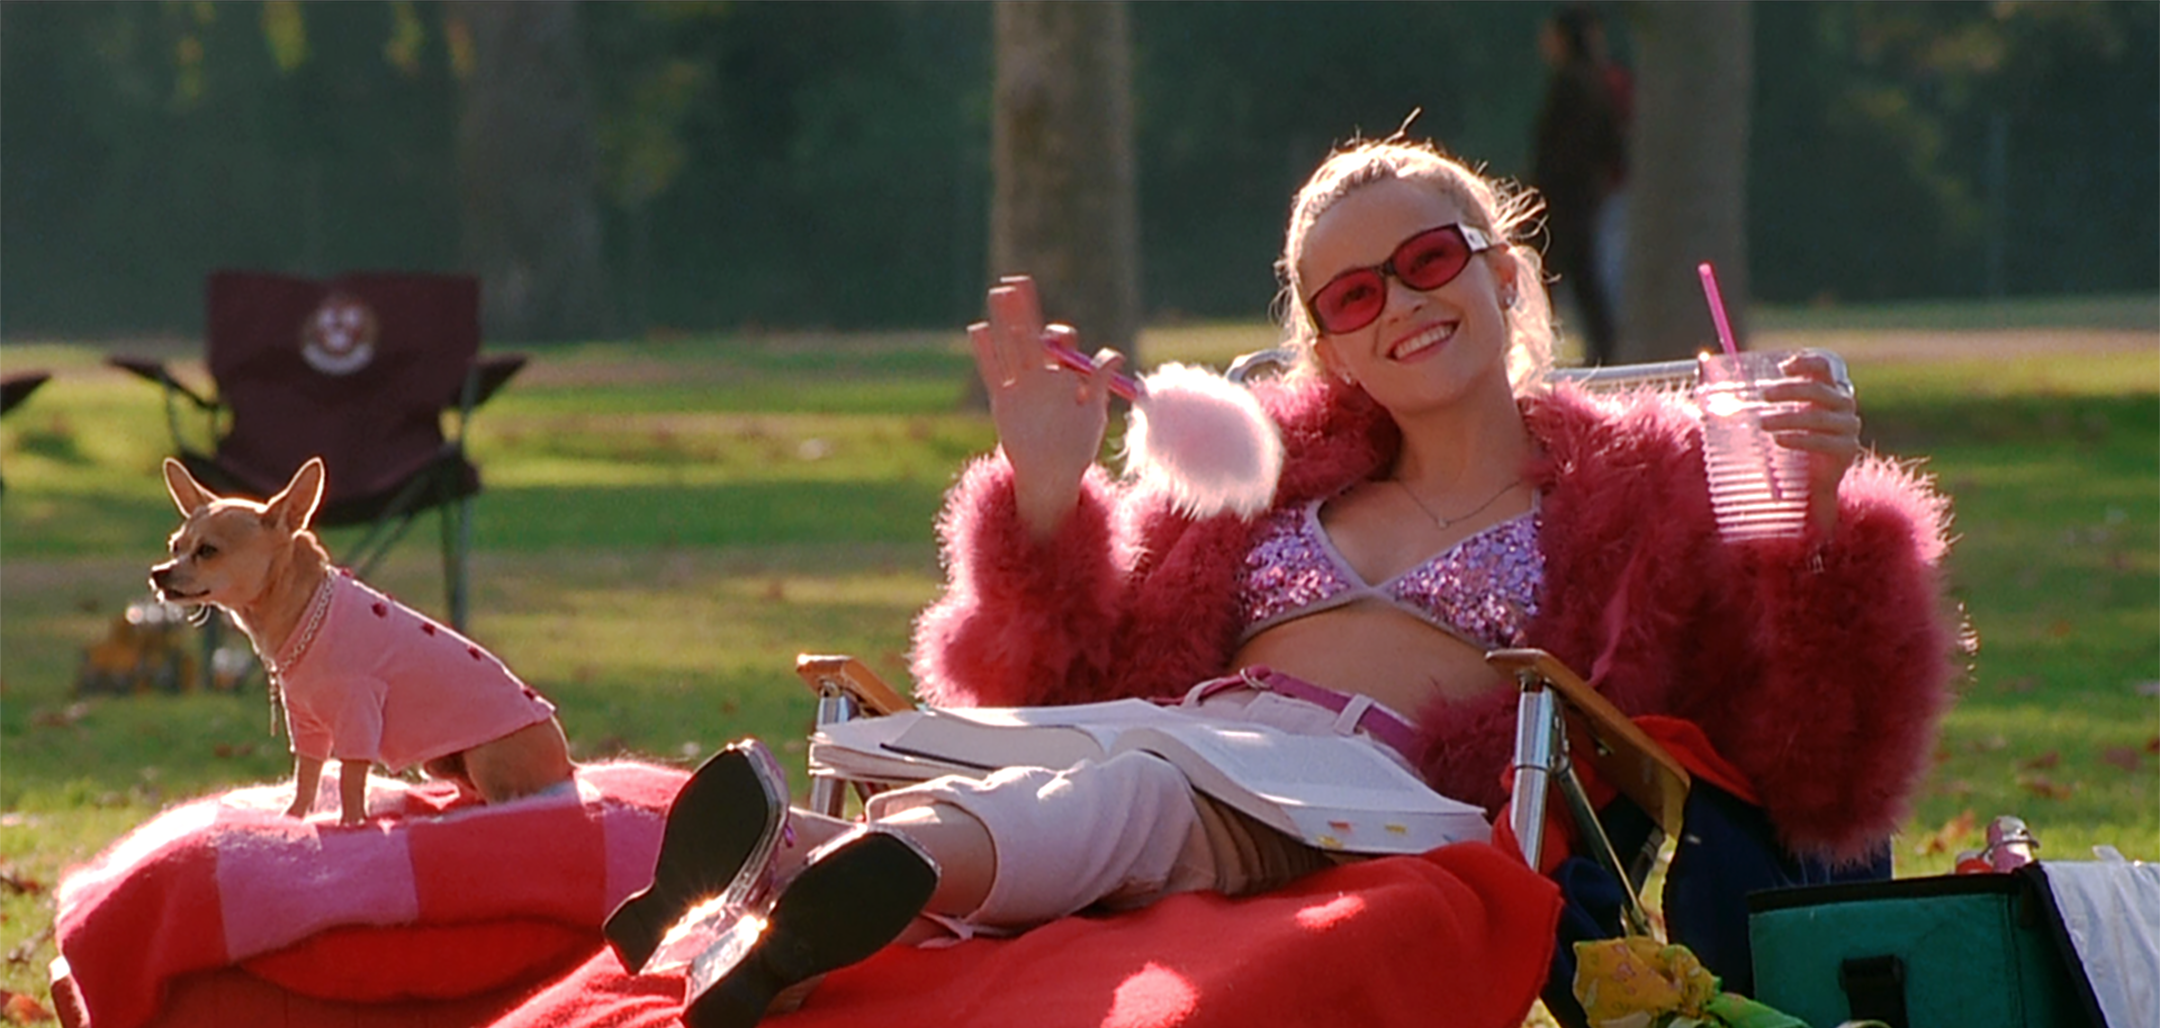 Reece Witherspoon as Elle, lounging on a red chair with her dog in a still from Legally Blonde (2001)